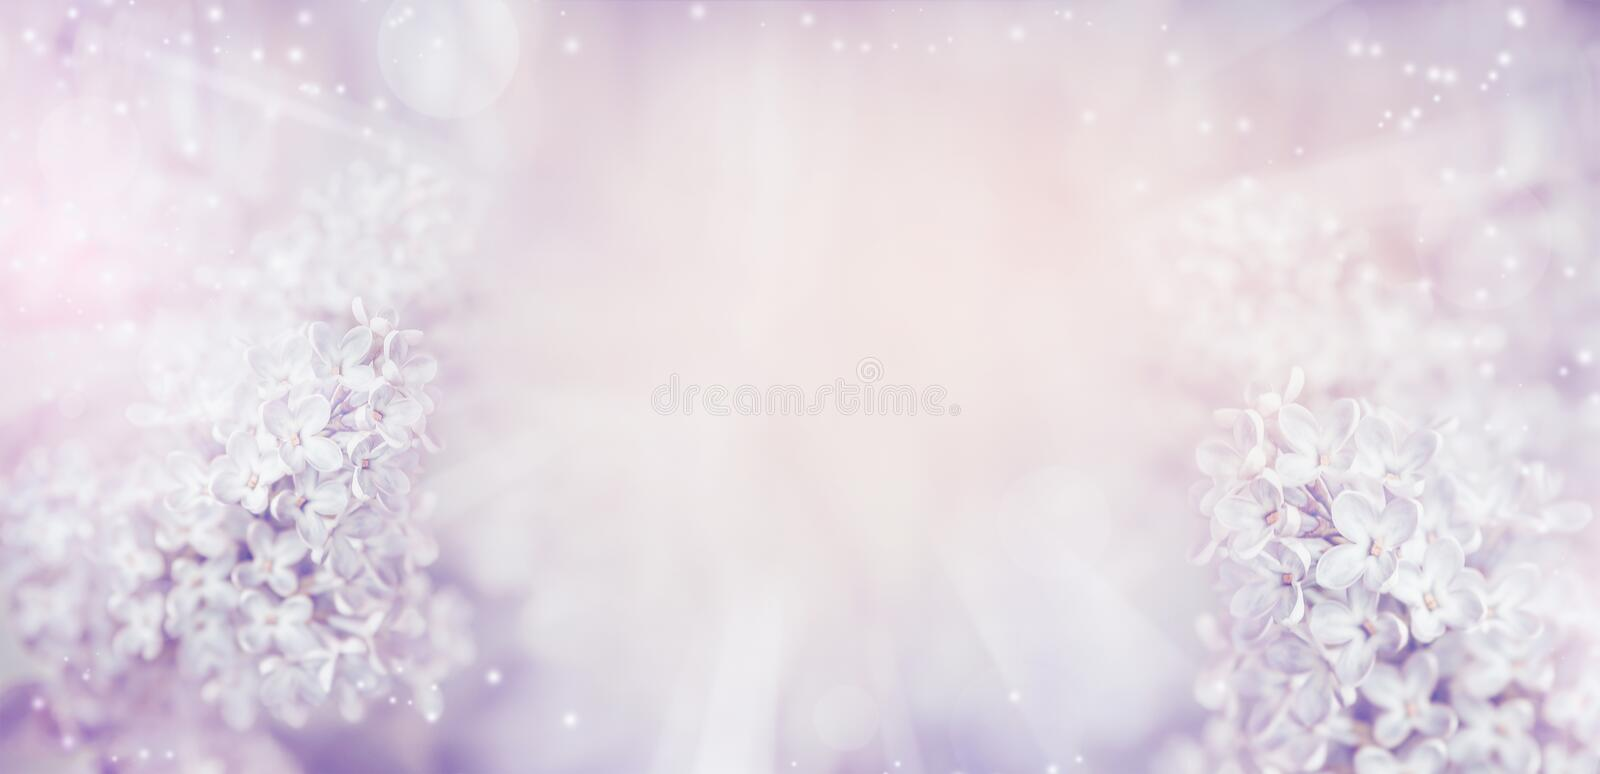 Floral nature background with beautiful light pastel lilac flowers. royalty free stock photos